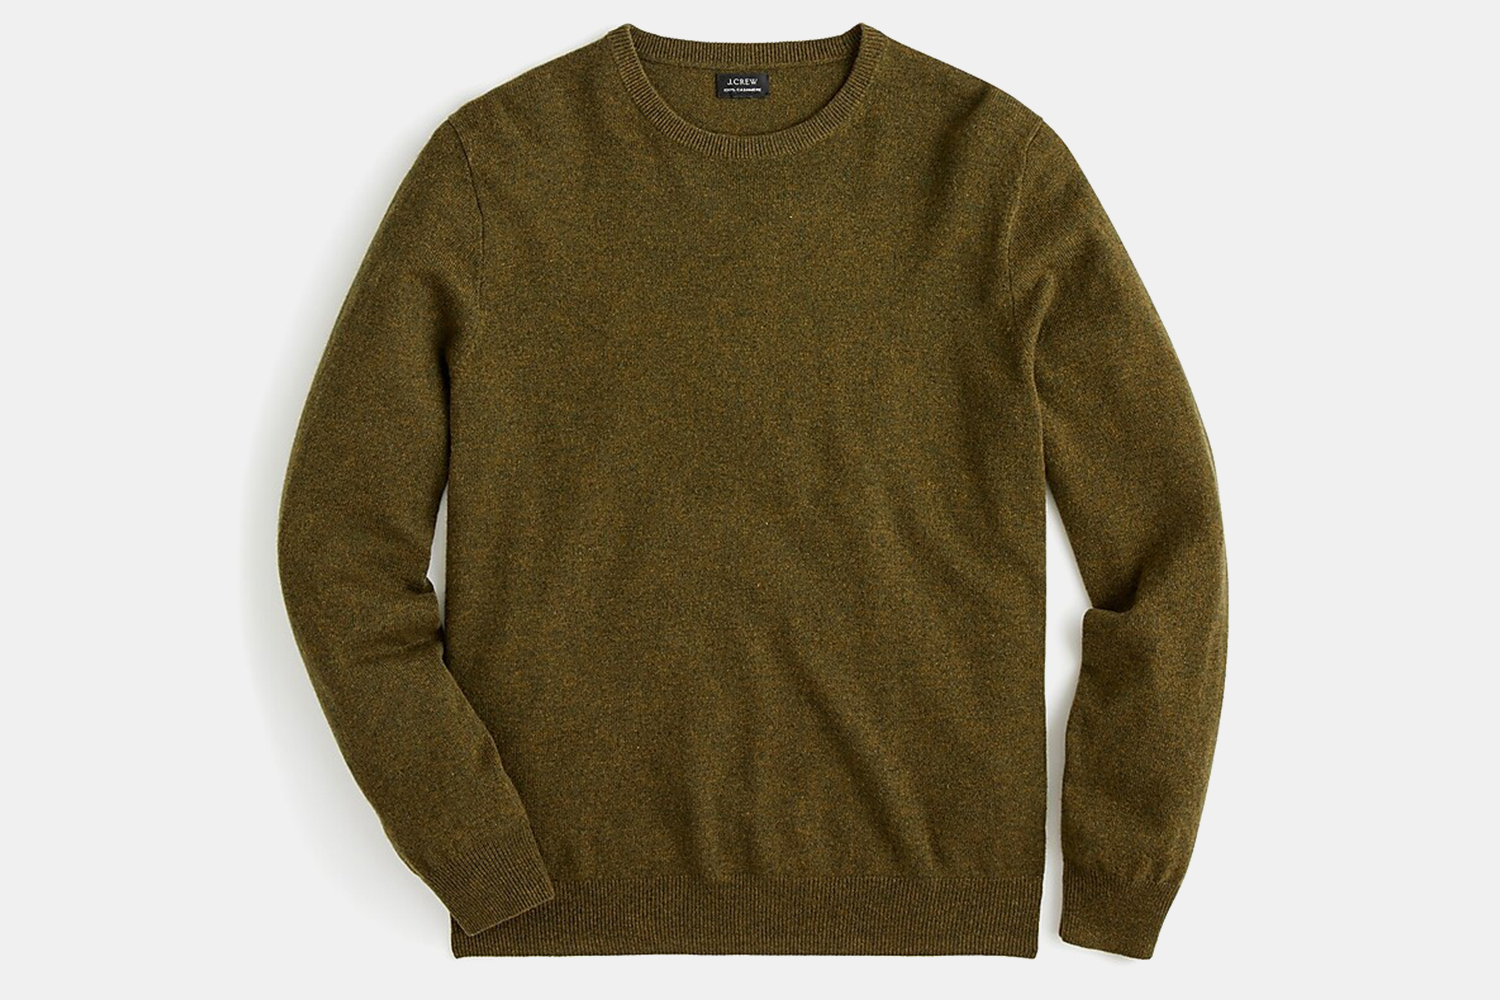 Deal: J.Crew Cashmere Is Up to 50% Off